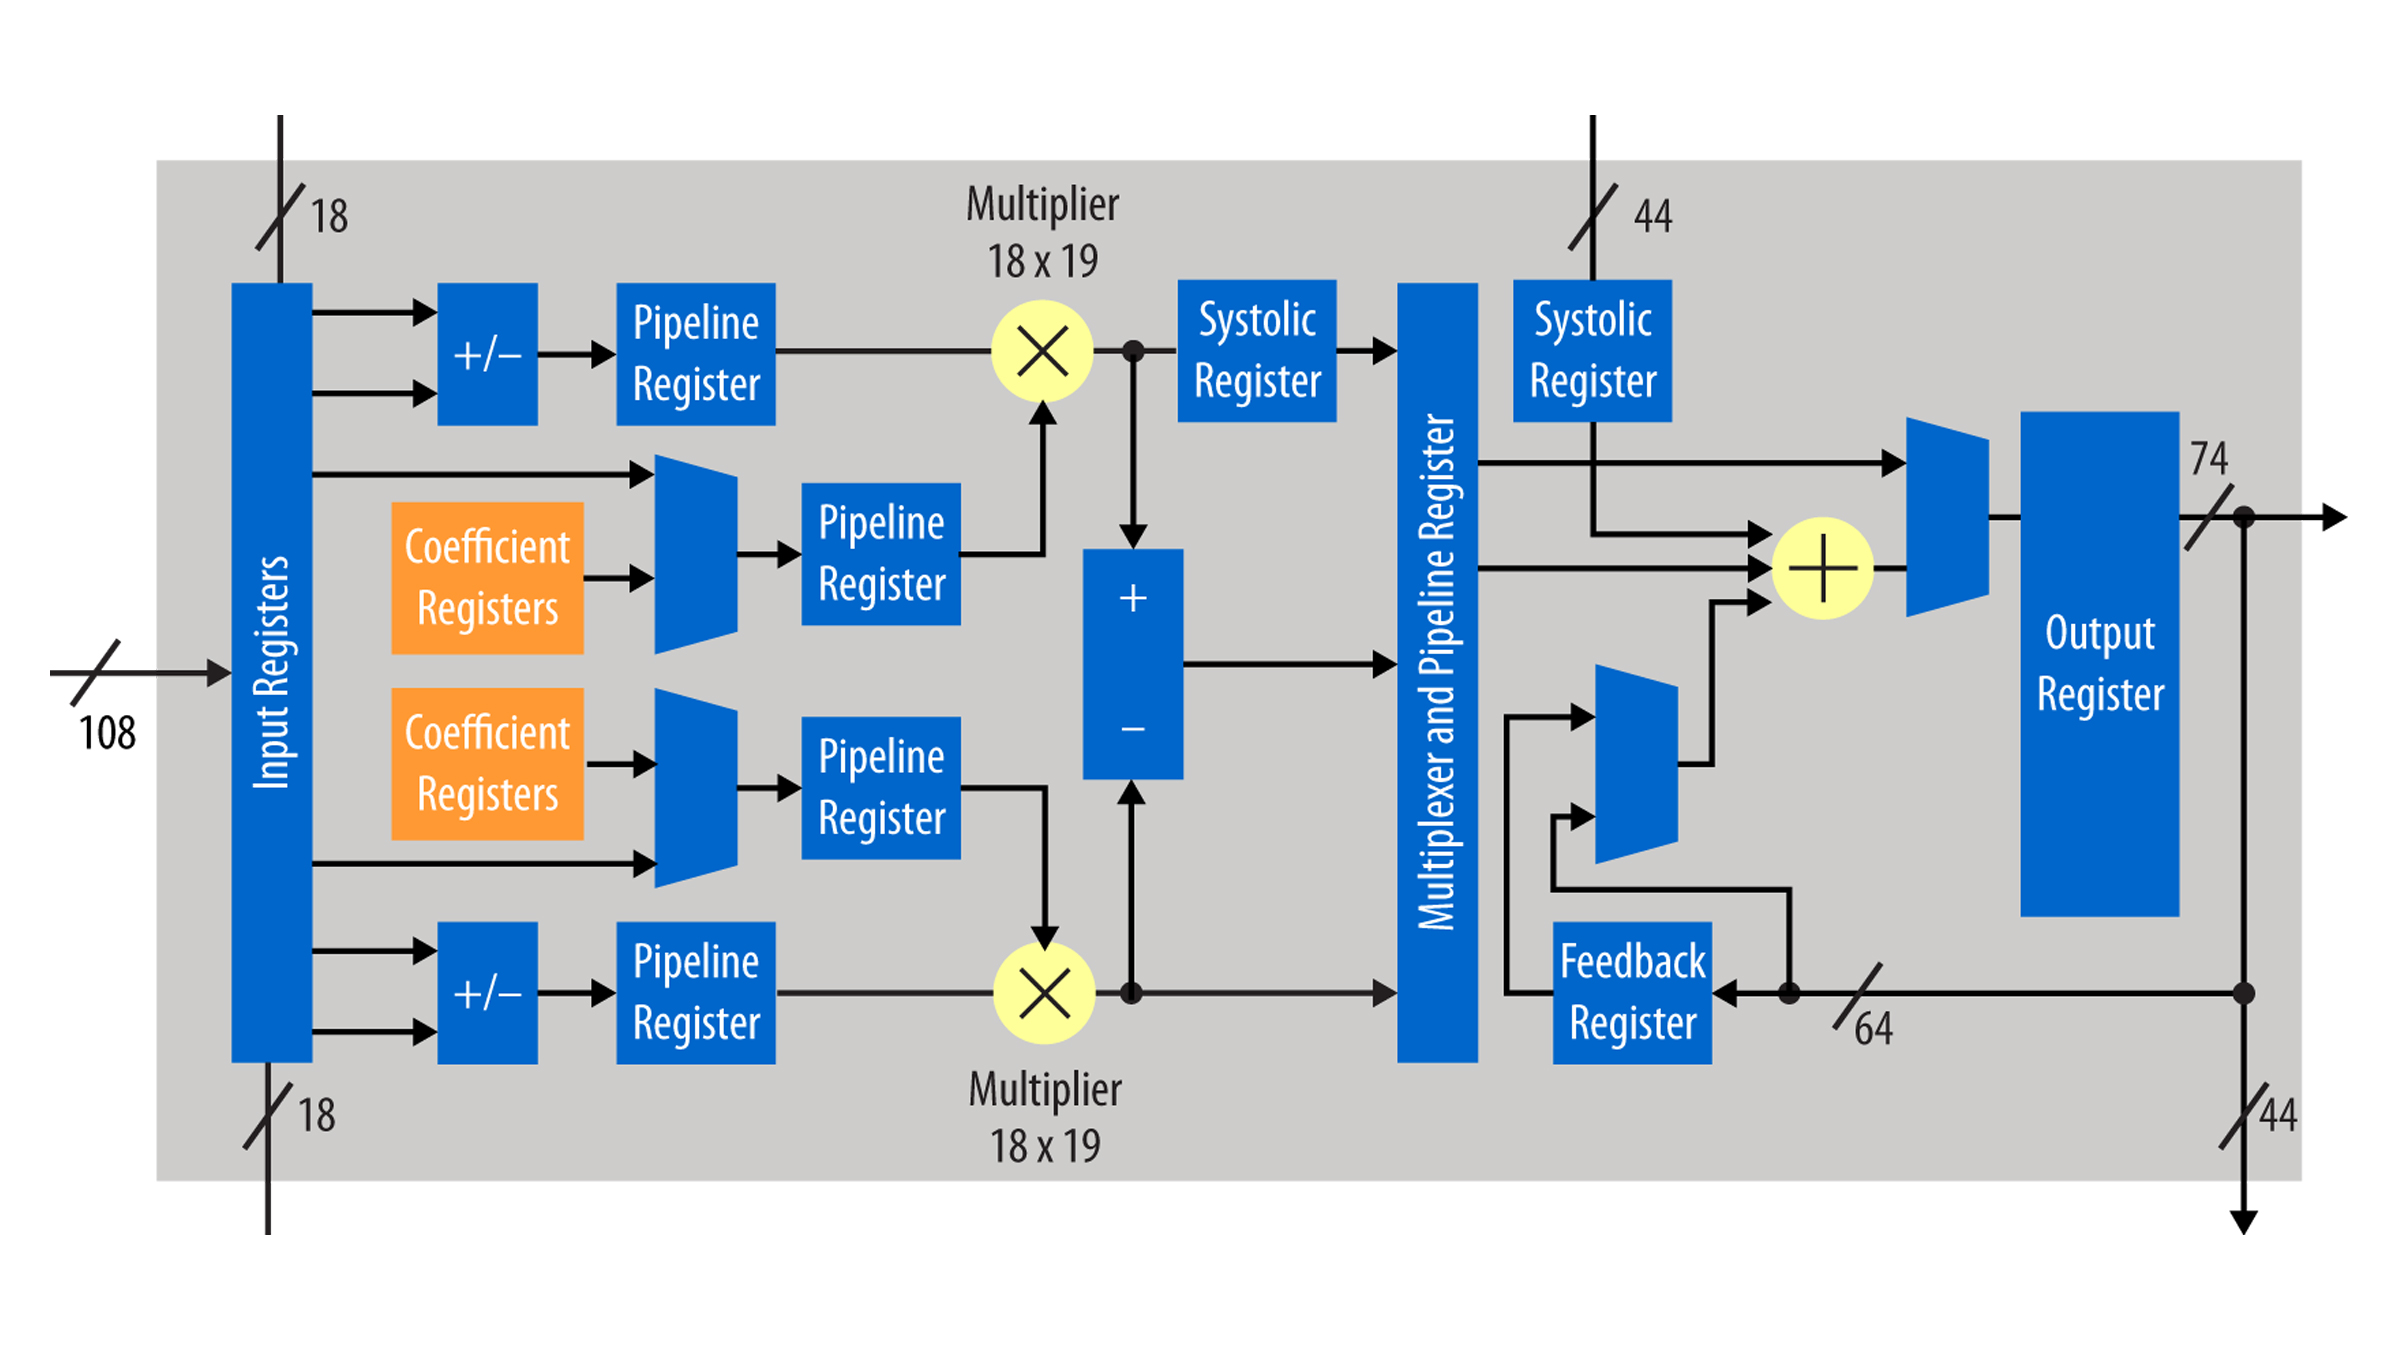 Intel Stratix 10 Fpgas Features Block Diagram Of The Physical Coding Sublayer Pcs Ip Core Device Dsp High Precision Fixed Point